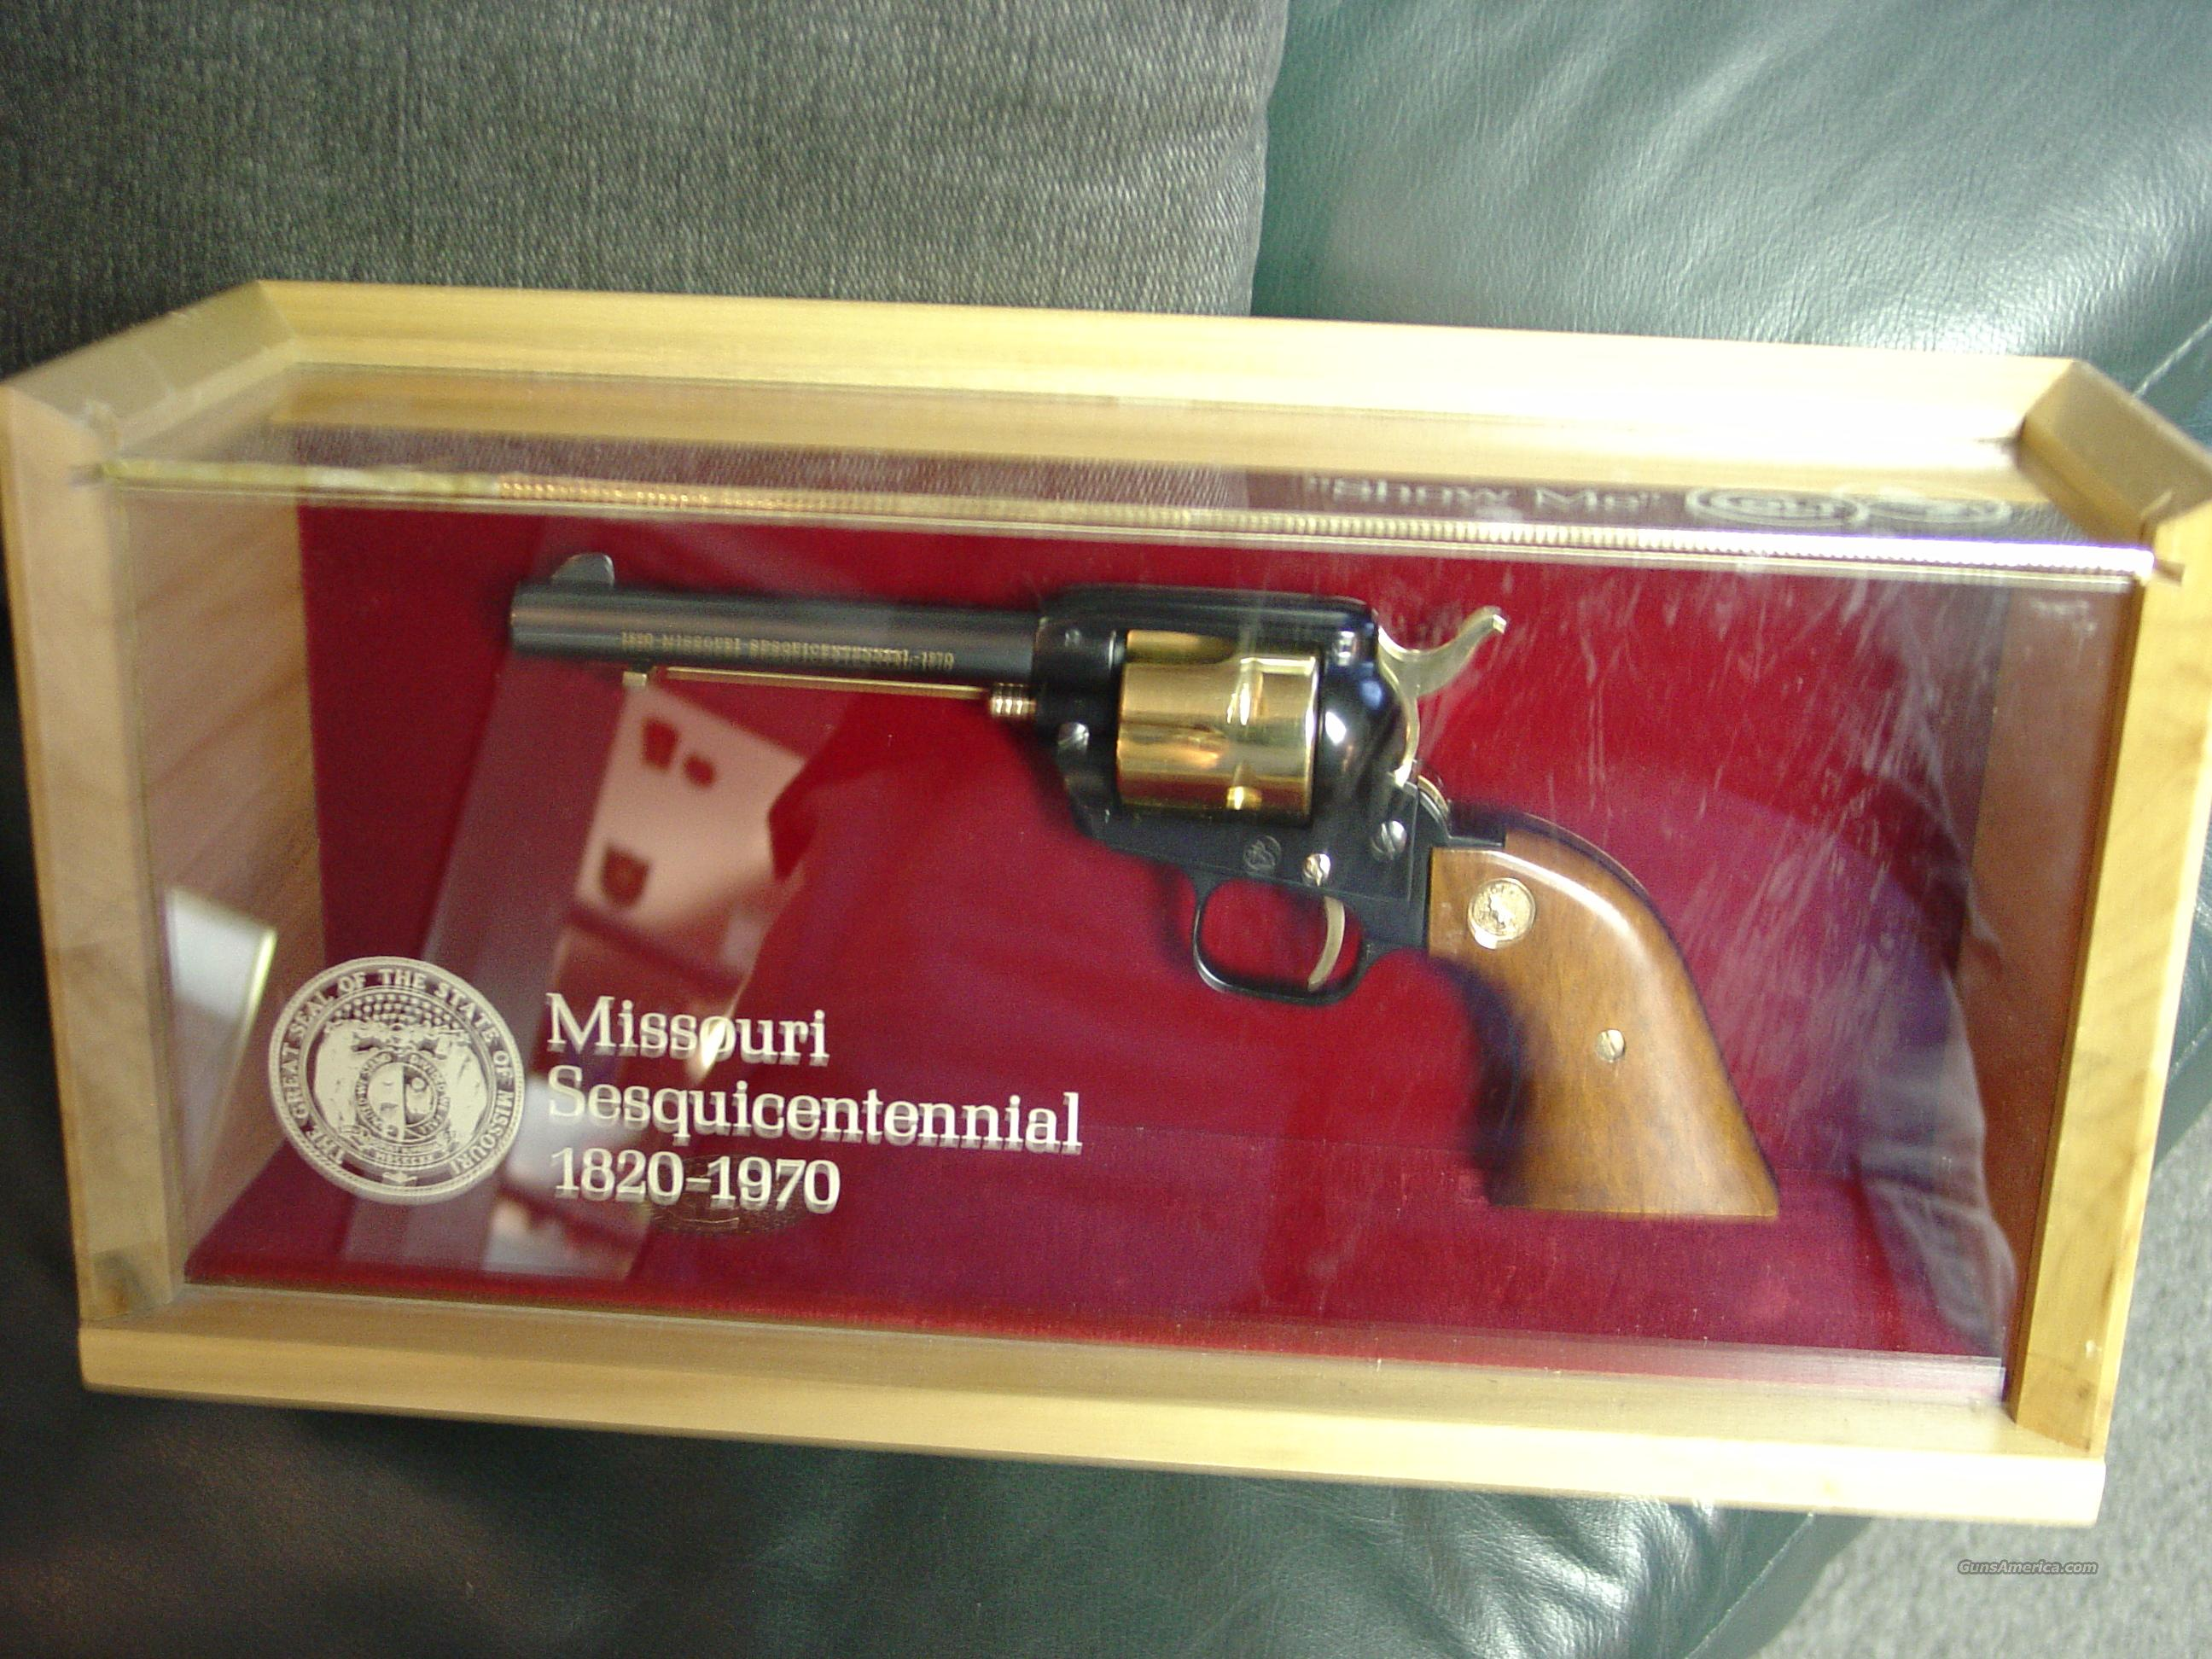 "Colt Frontier Scout 22LR,Missouri 150 year Sesquicentennial commemorative,4 3/4"",1970,gold plated & blued,stand up pres.case,manual,key,unfired in 43 years-very nice  Guns > Pistols > Colt Commemorative Pistols"